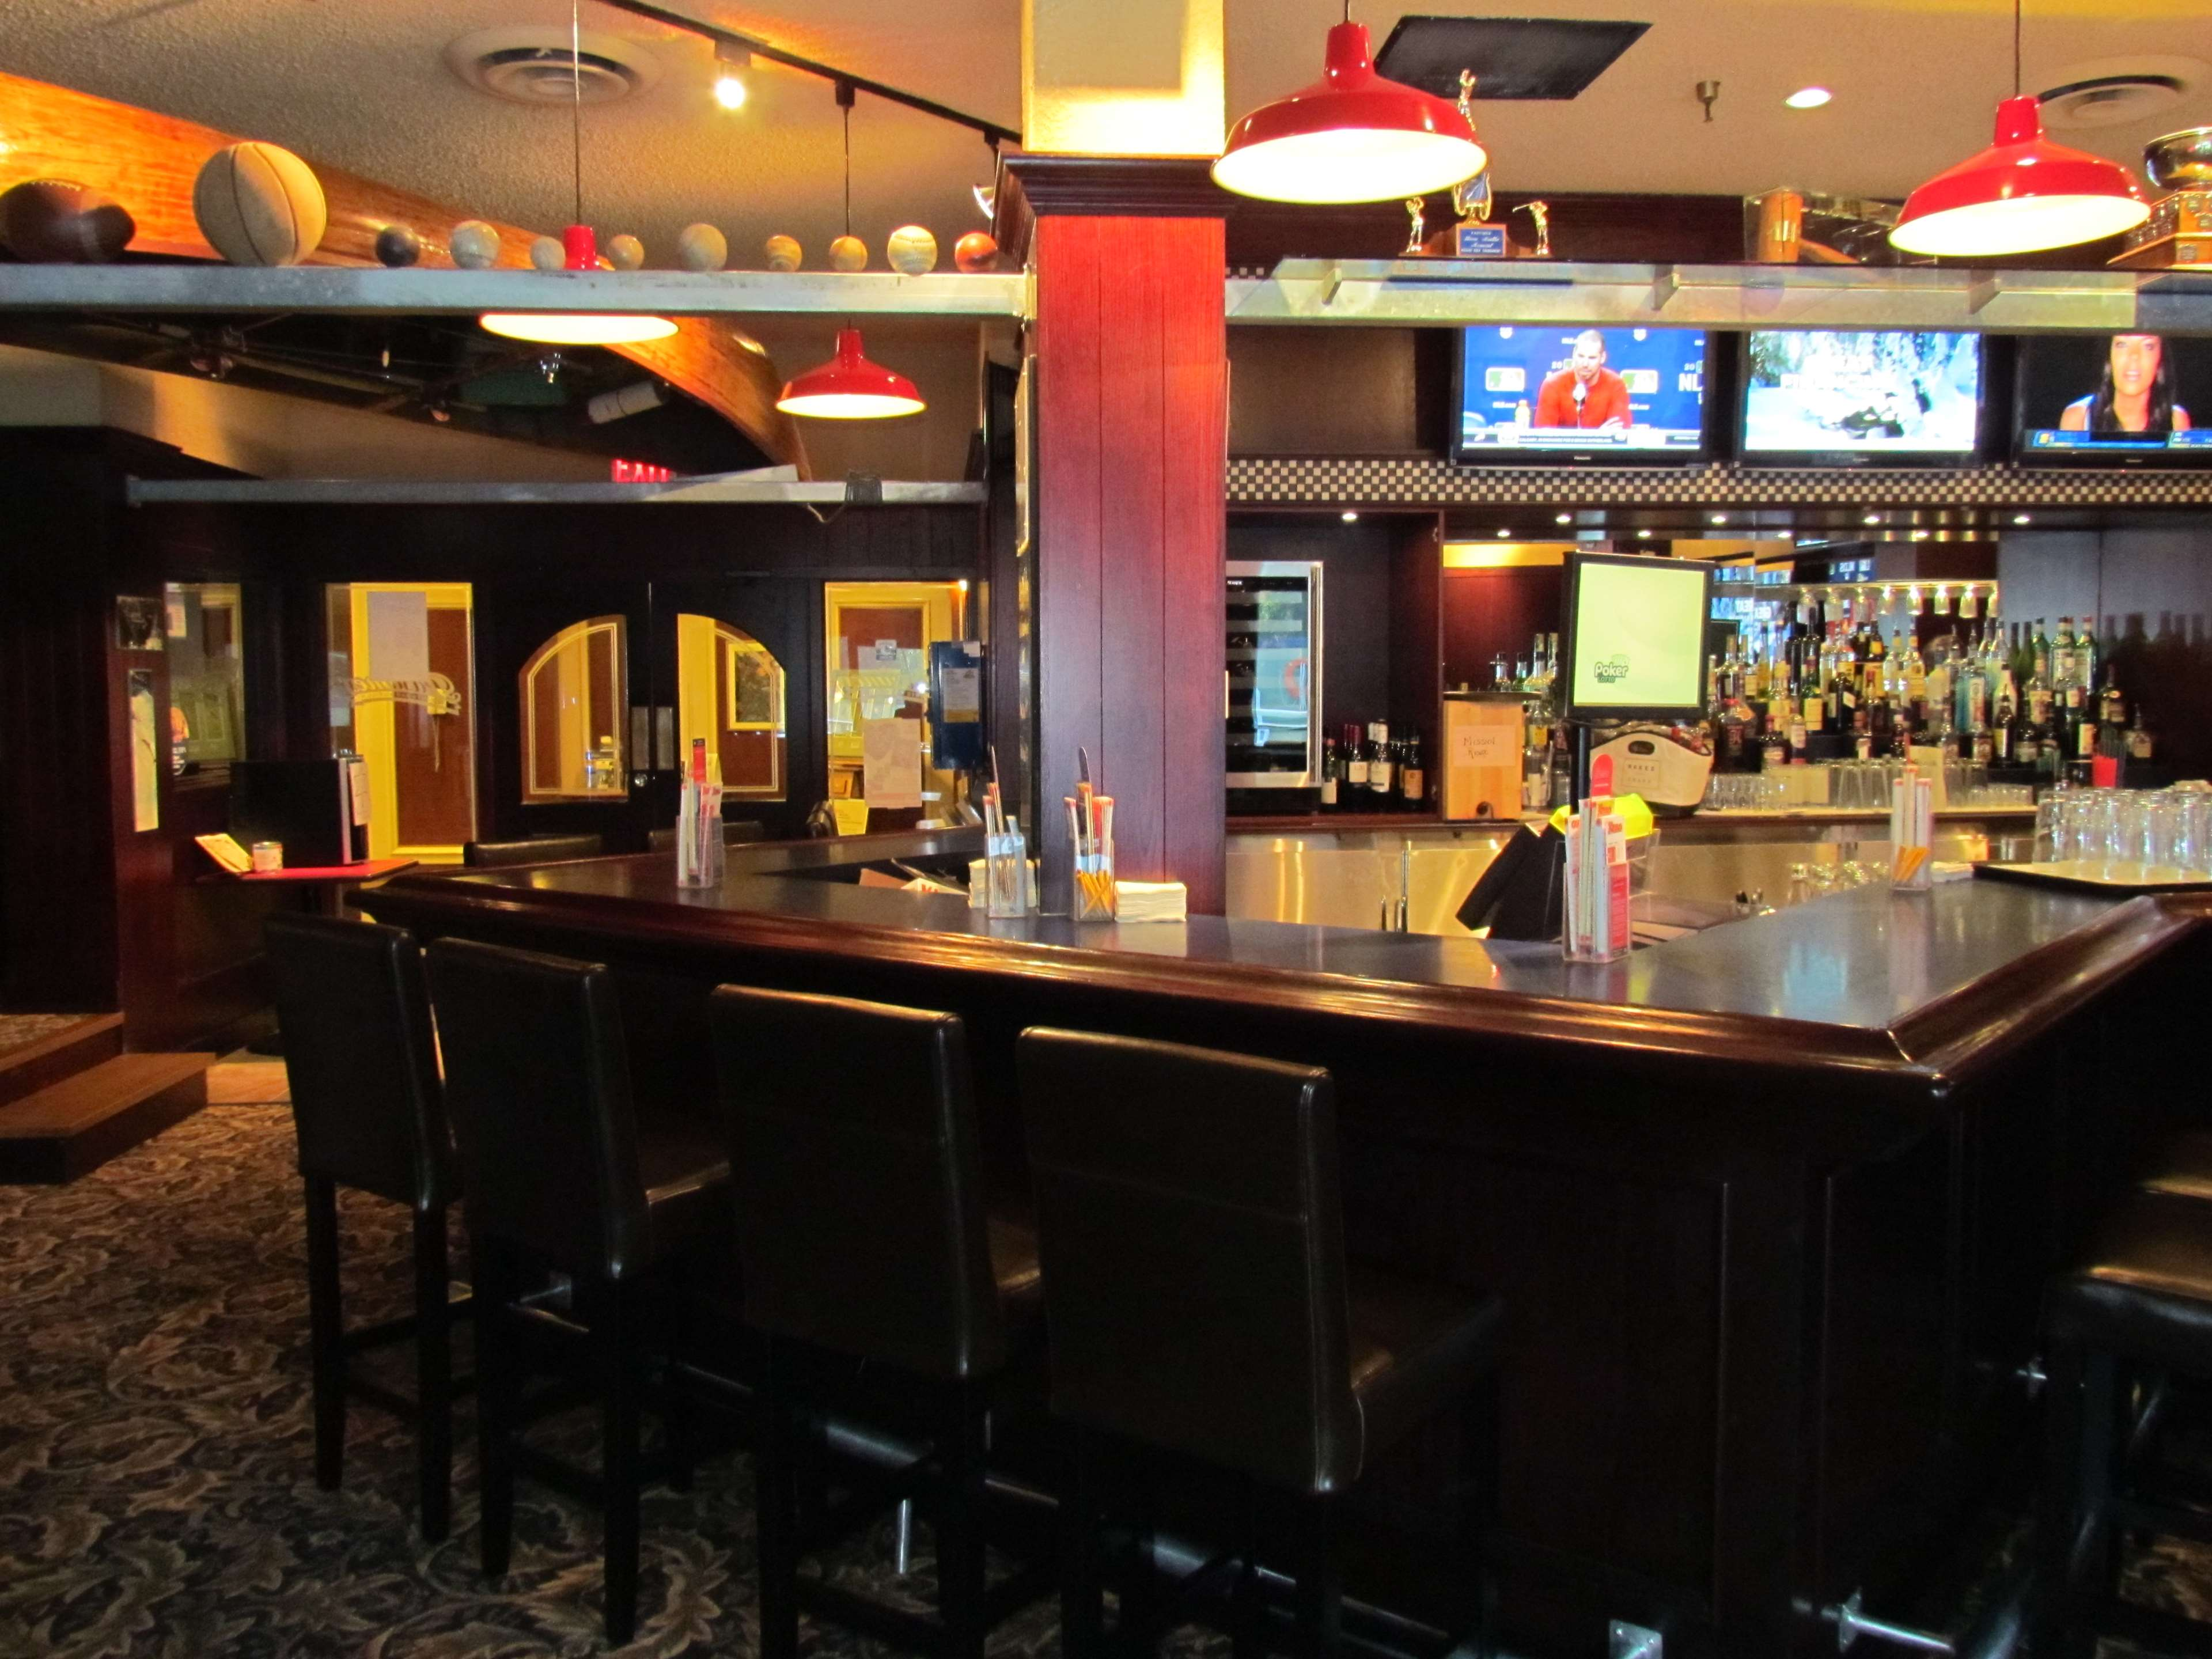 Best Western Plus Barclay Hotel in Port Alberni: Pastimes Sports Bar and Grill for watching your favorite sports.